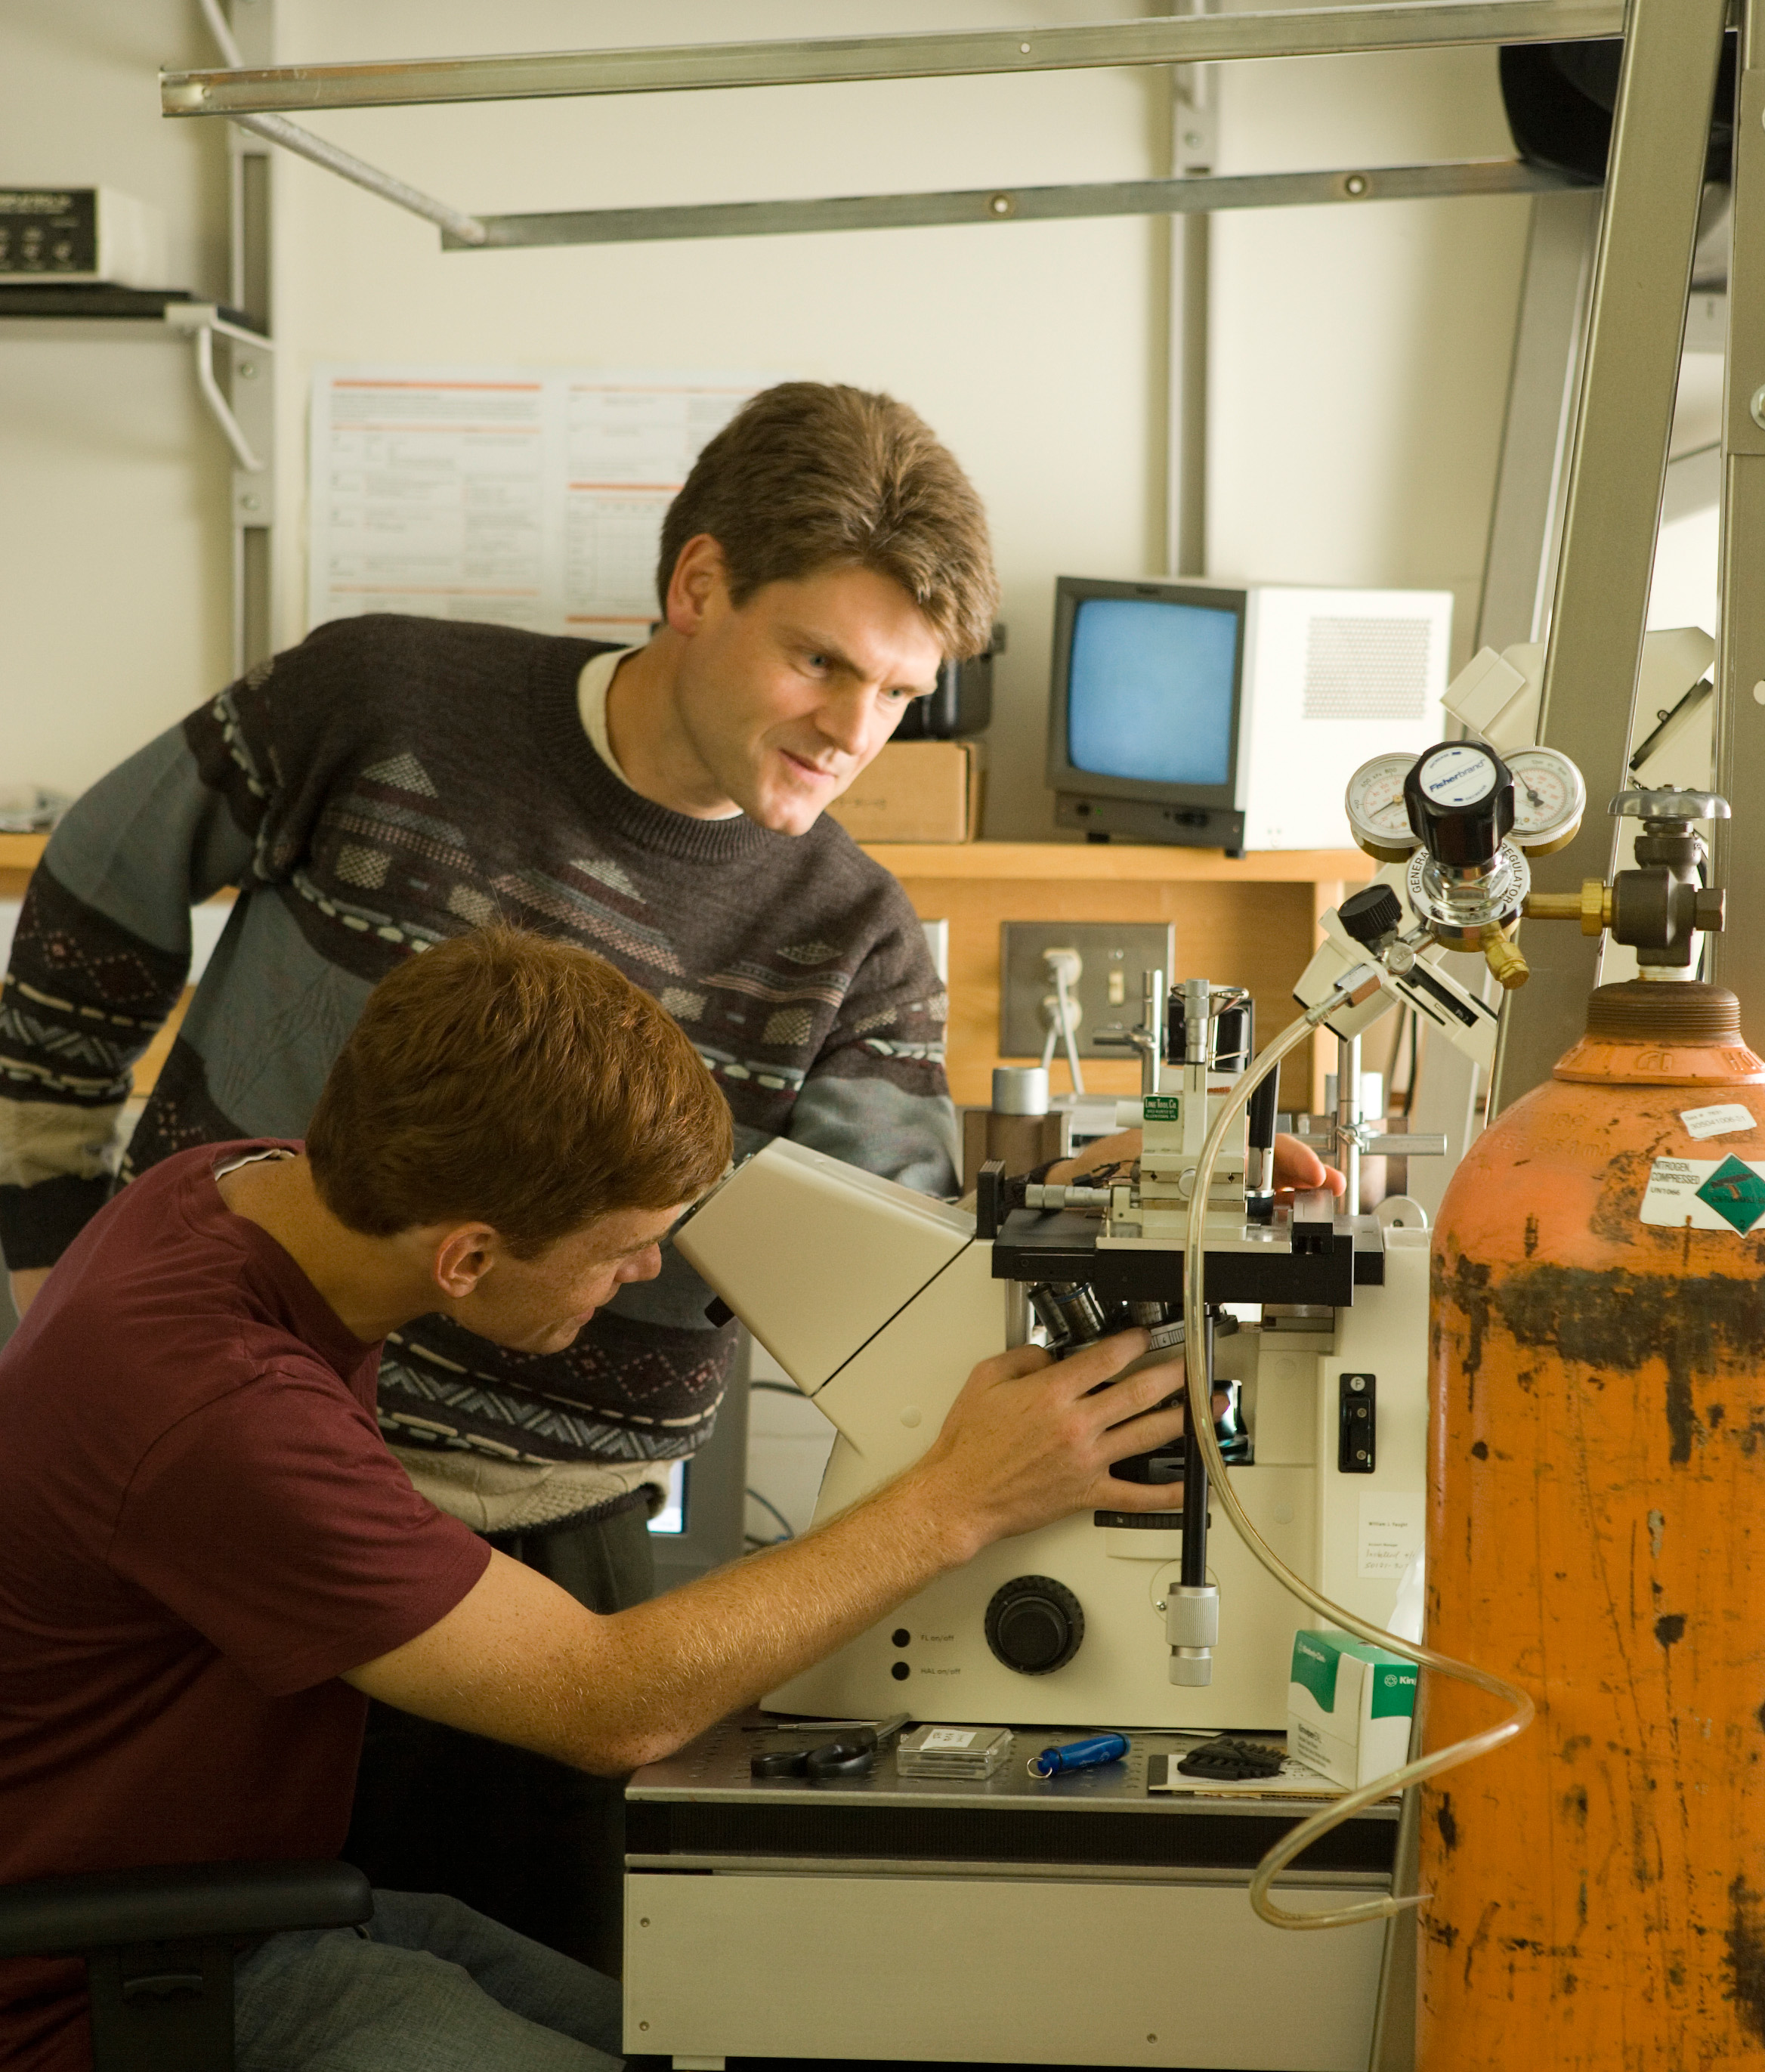 What is better for an undergraduate going into a physics career? ?